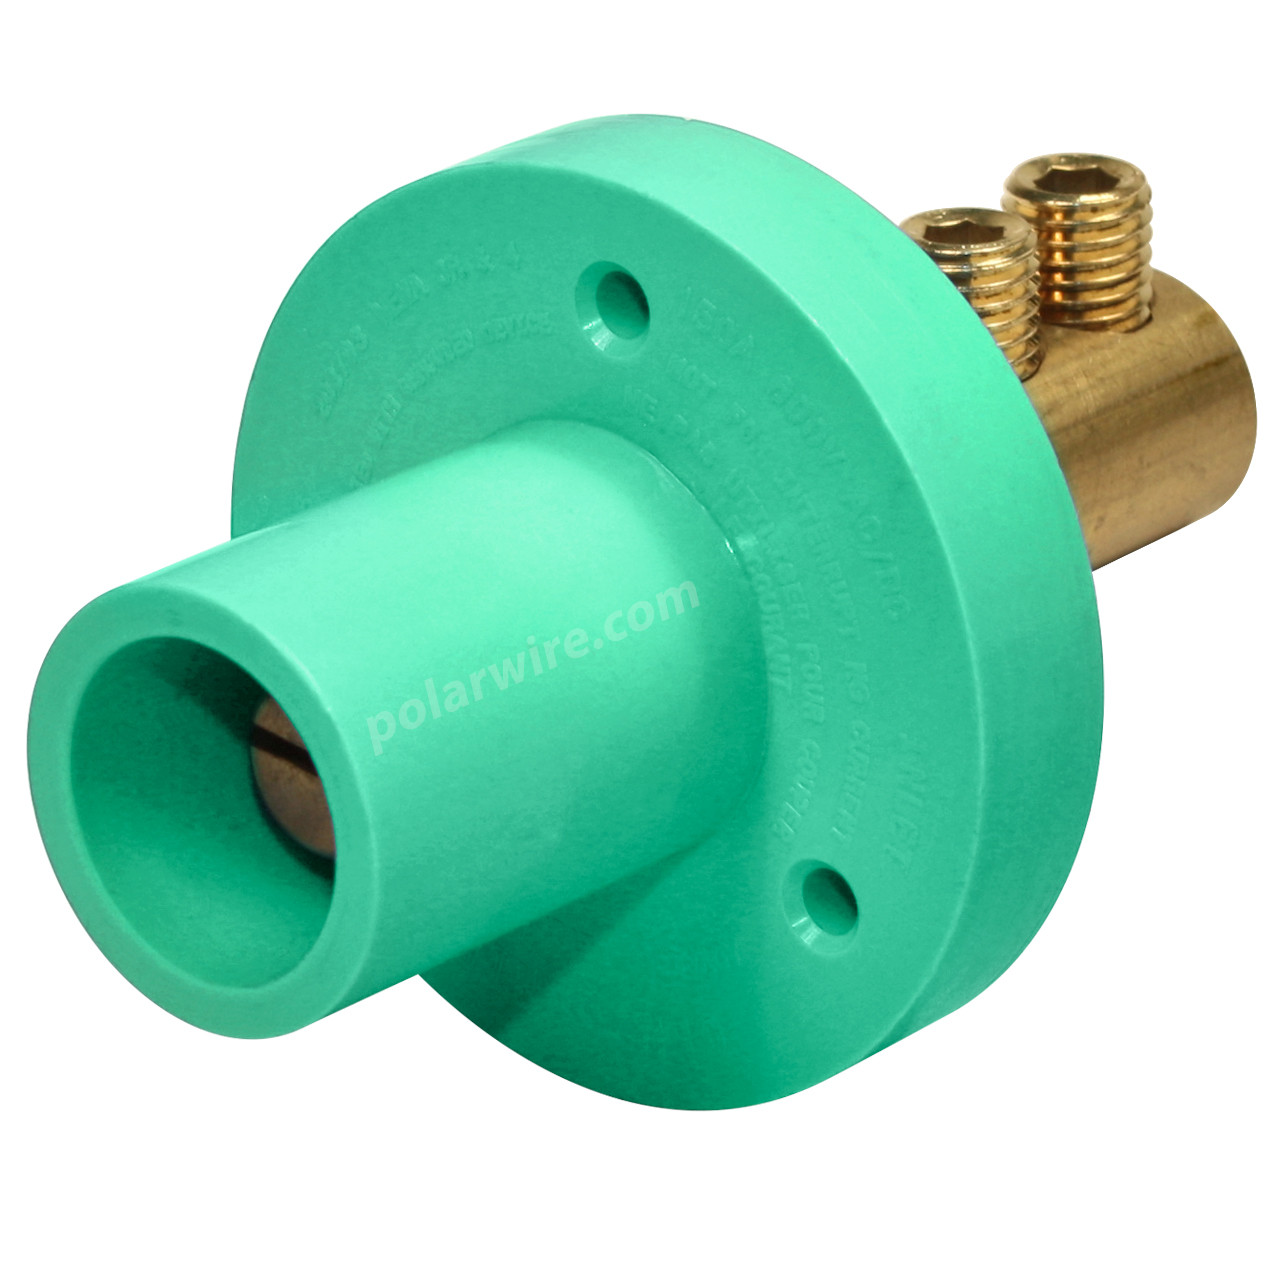 Marinco 150 Amp Male CLM 15 Series Mini Panel Mount Single Pin Cam Lock Connector 8-2 AWG Green Double Set Screw Style